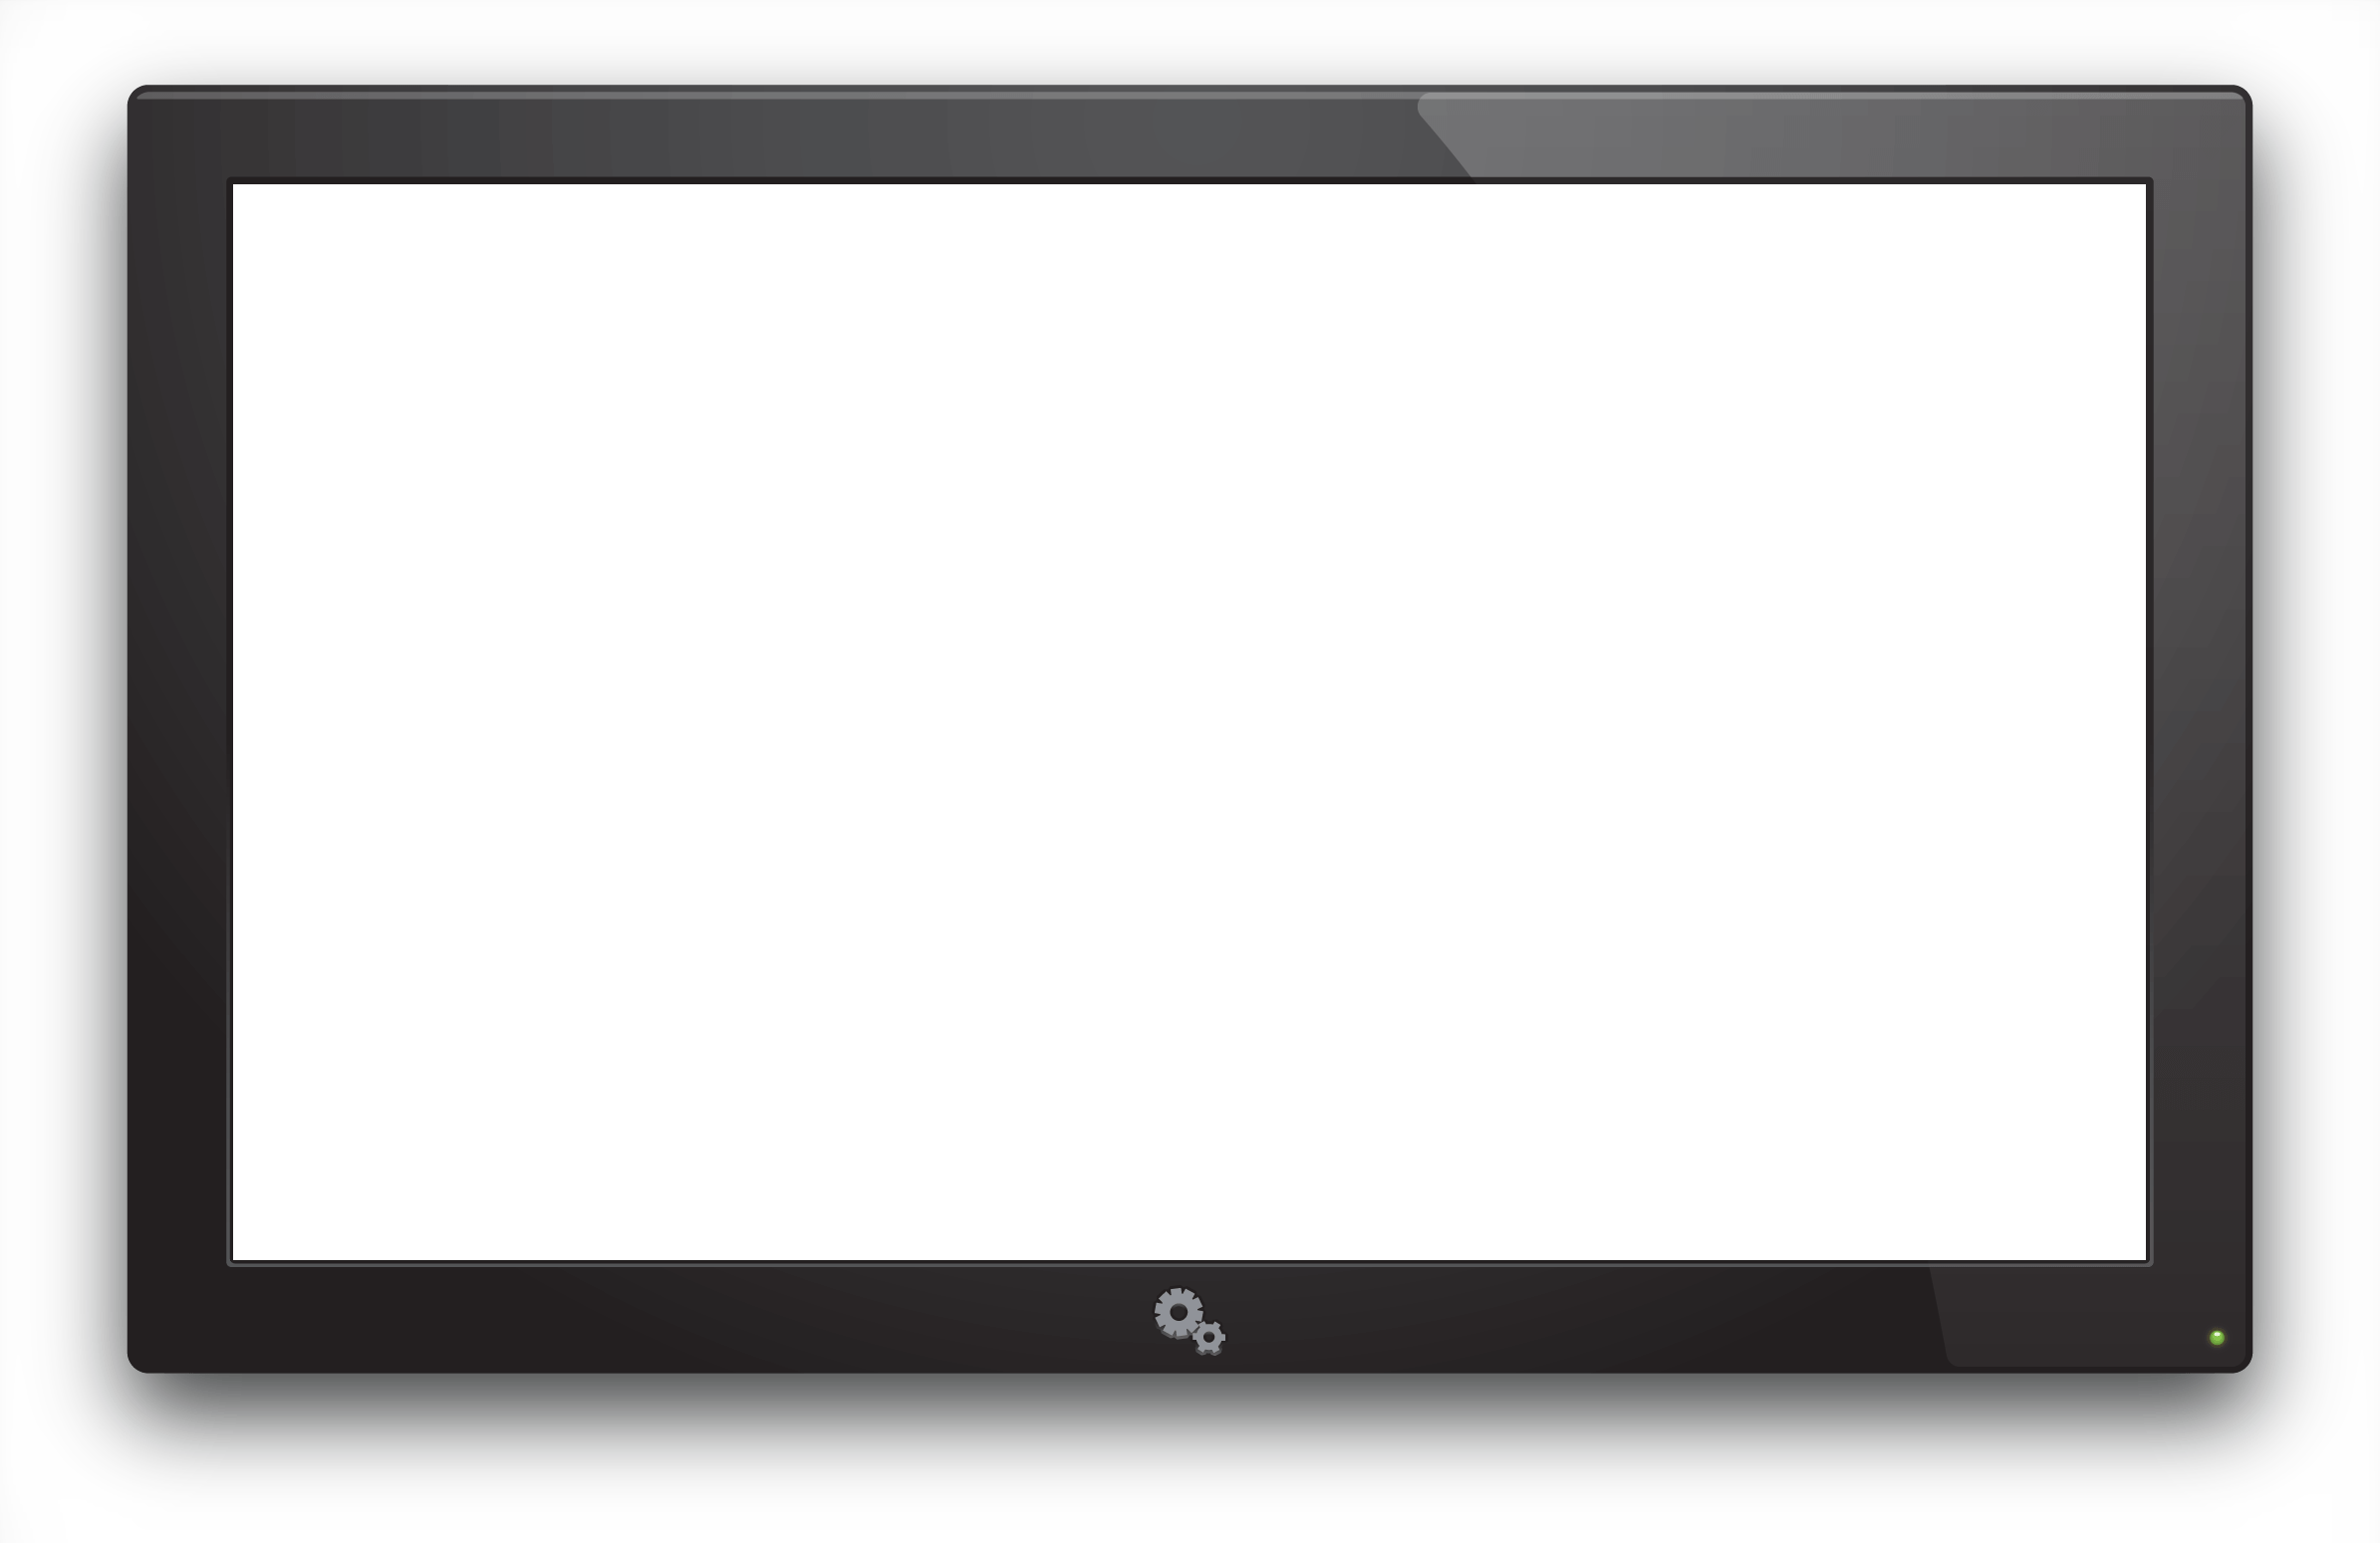 Electronics clipart black and white. Television png image purepng